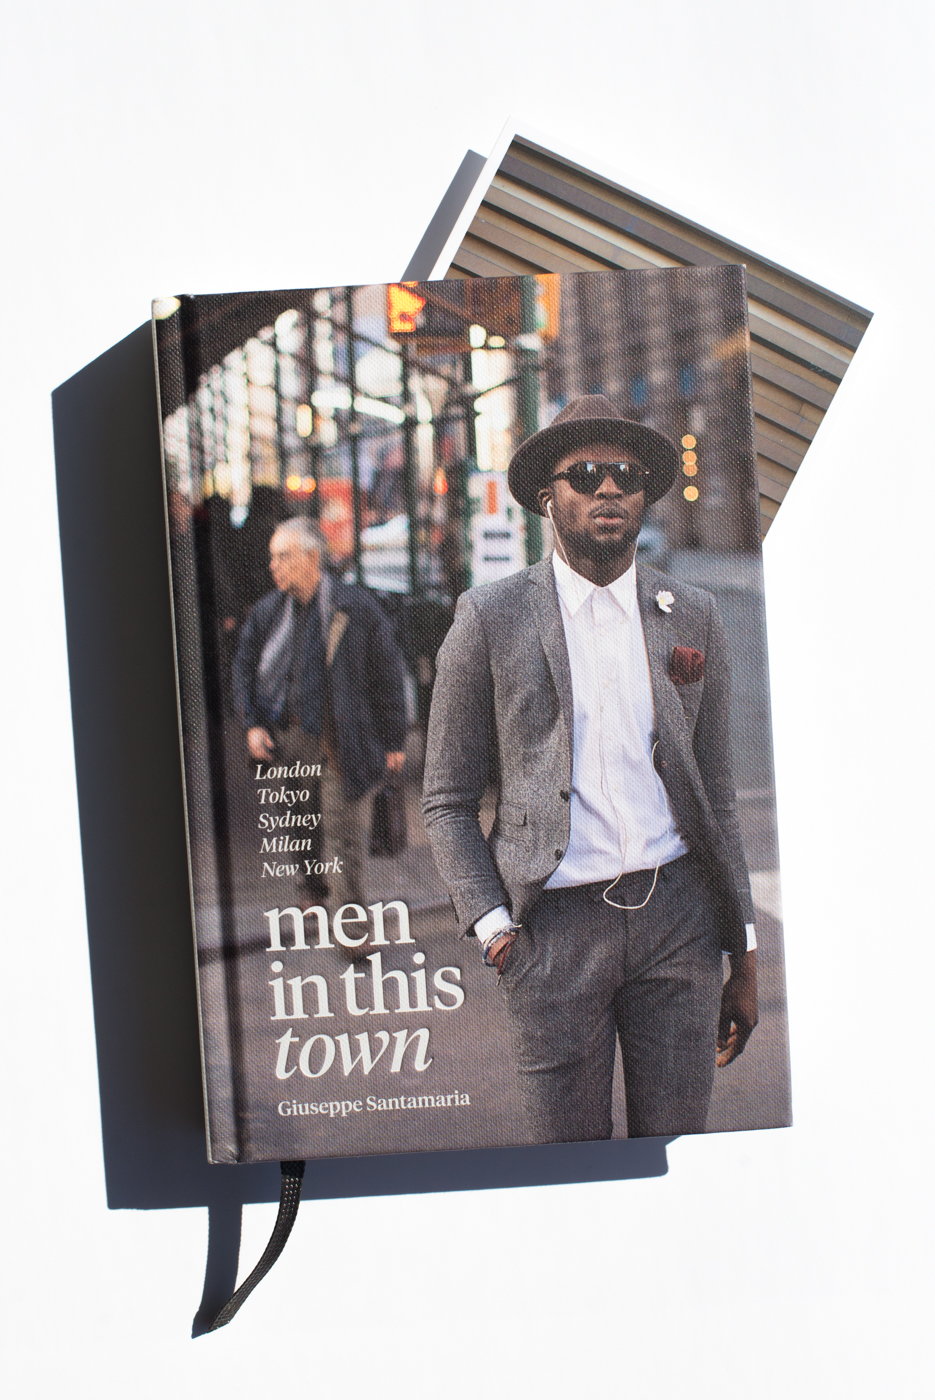 If you haven't picked up a copy of the  Men In This Town  book yet or you're looking for a holiday gift, I have 10 signed copies left in    The MITT Mrkt    that come with a limited edition postcard! Plus there are some other goodies in the shop,   check it out  .